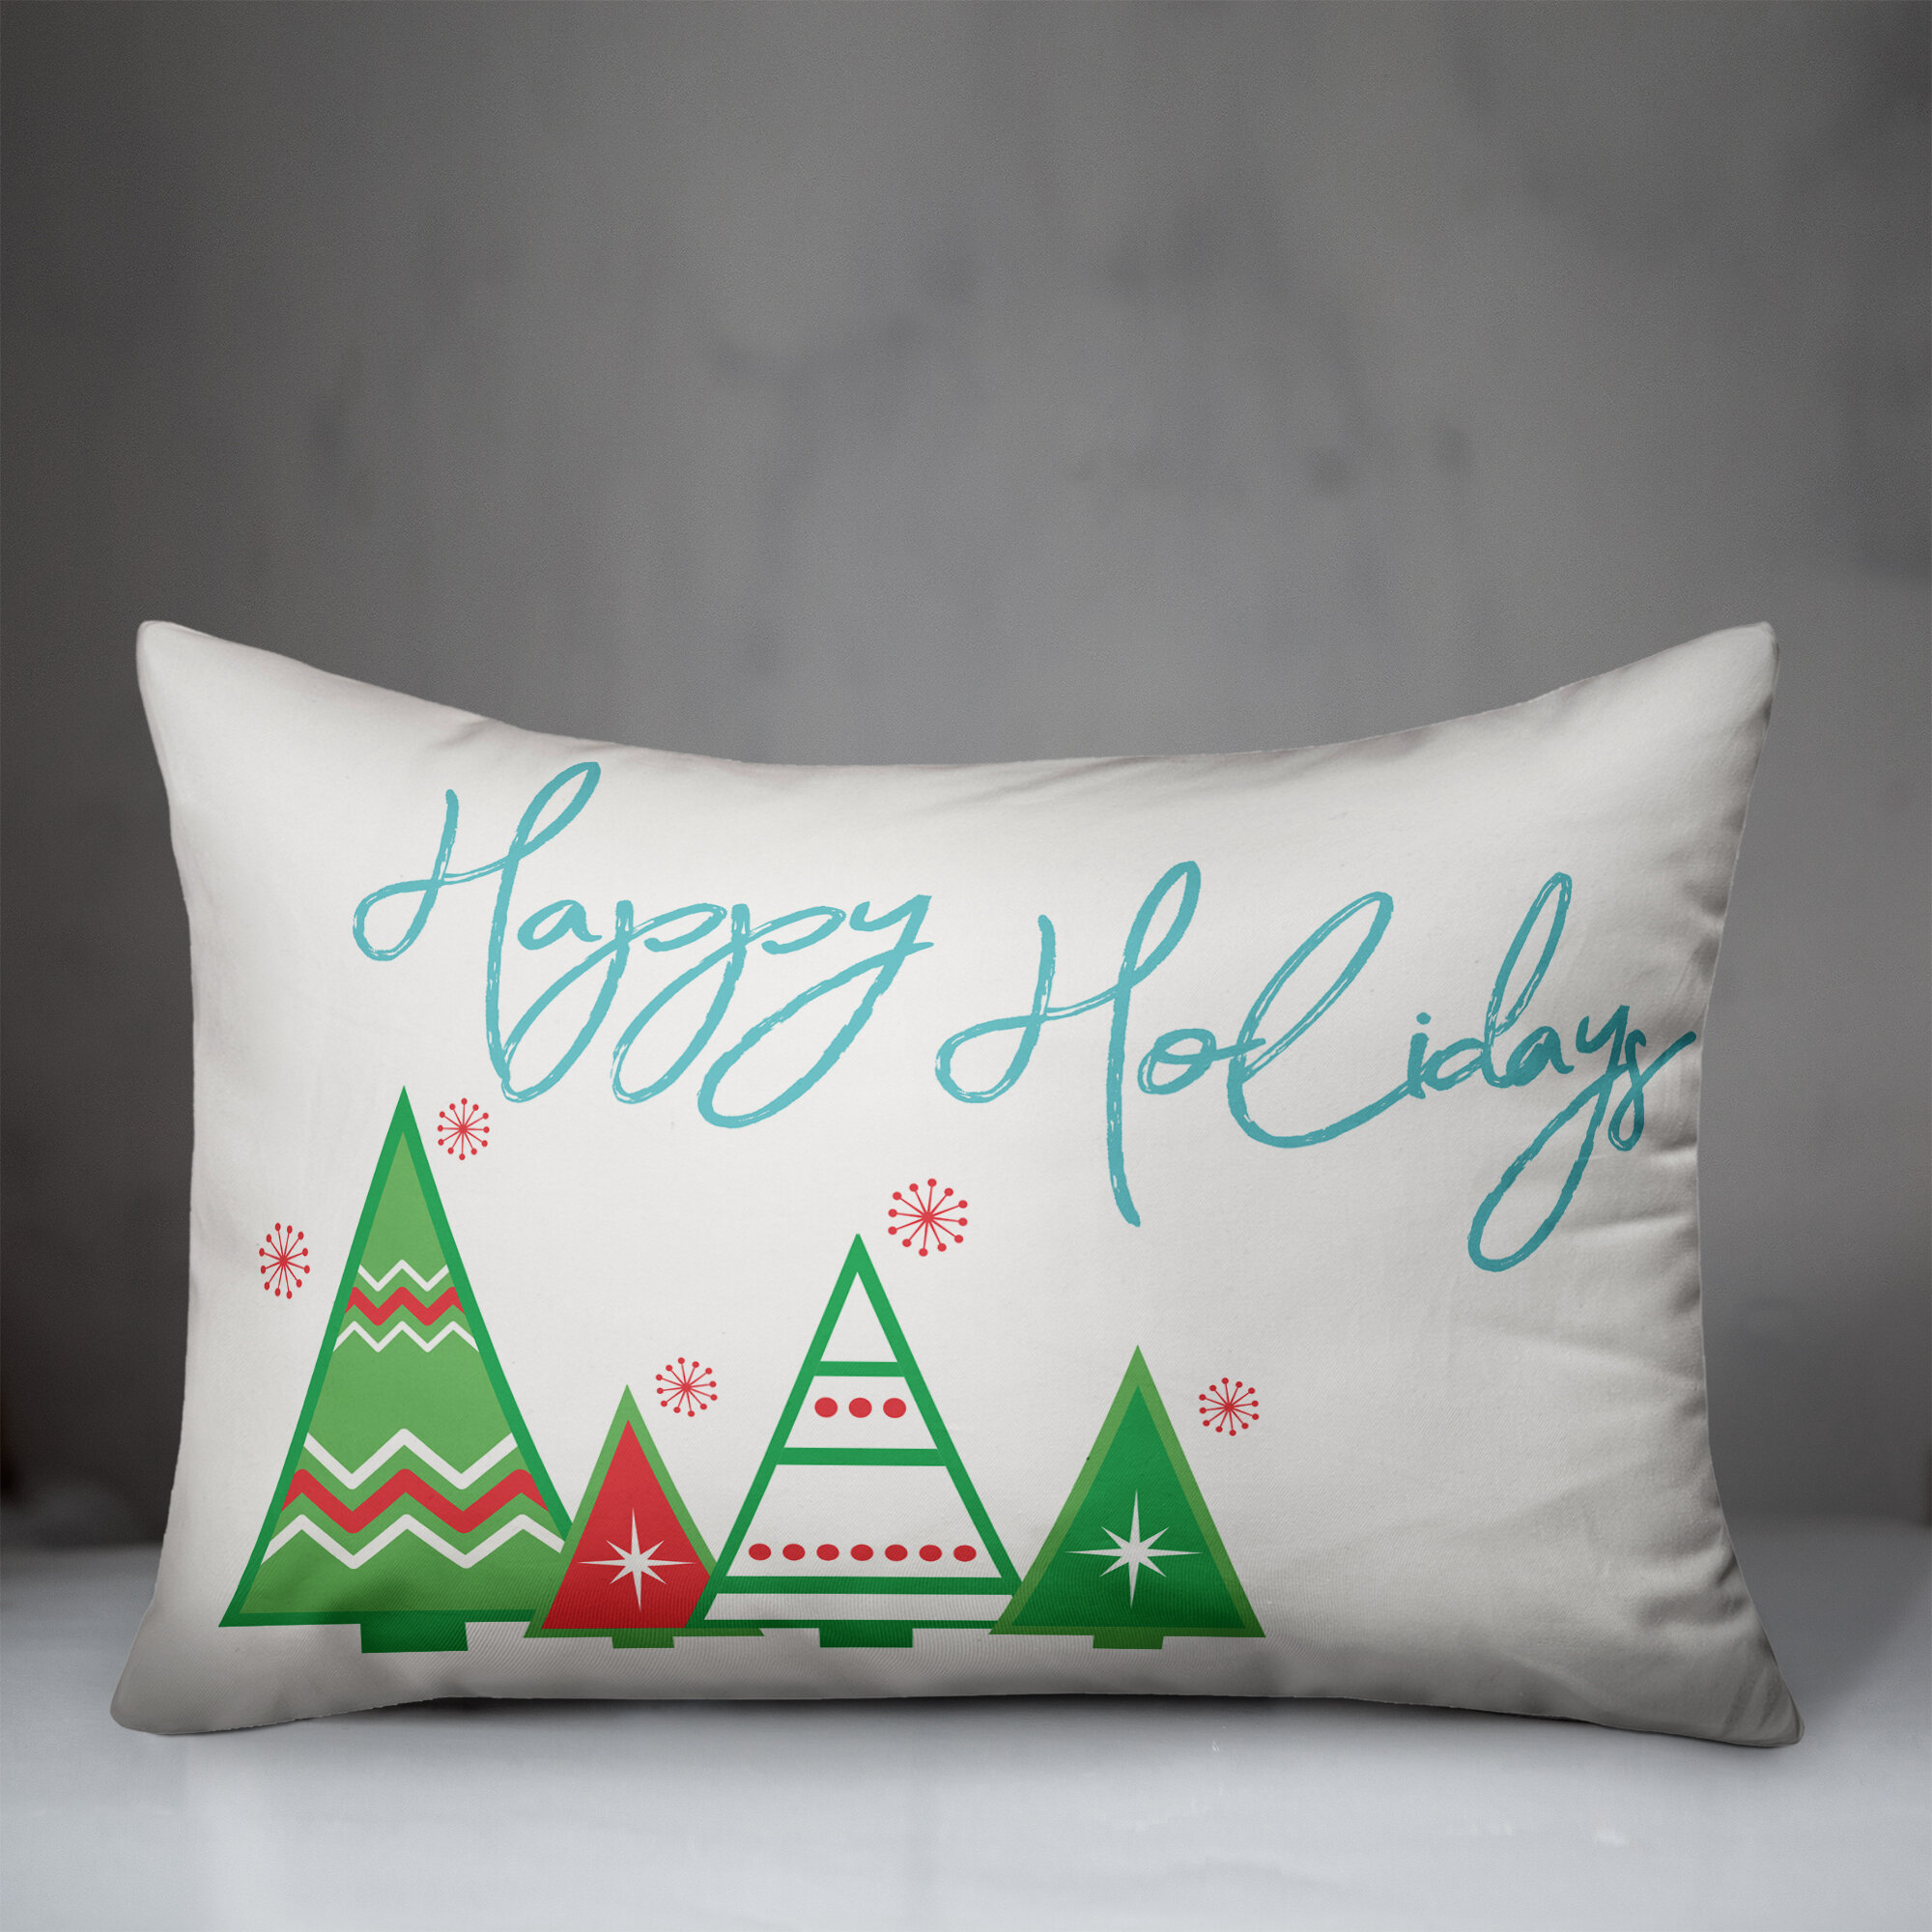 The Holiday Aisle Butcher Happy Holidays Striped Trees Lumbar Pillow Cover Wayfair